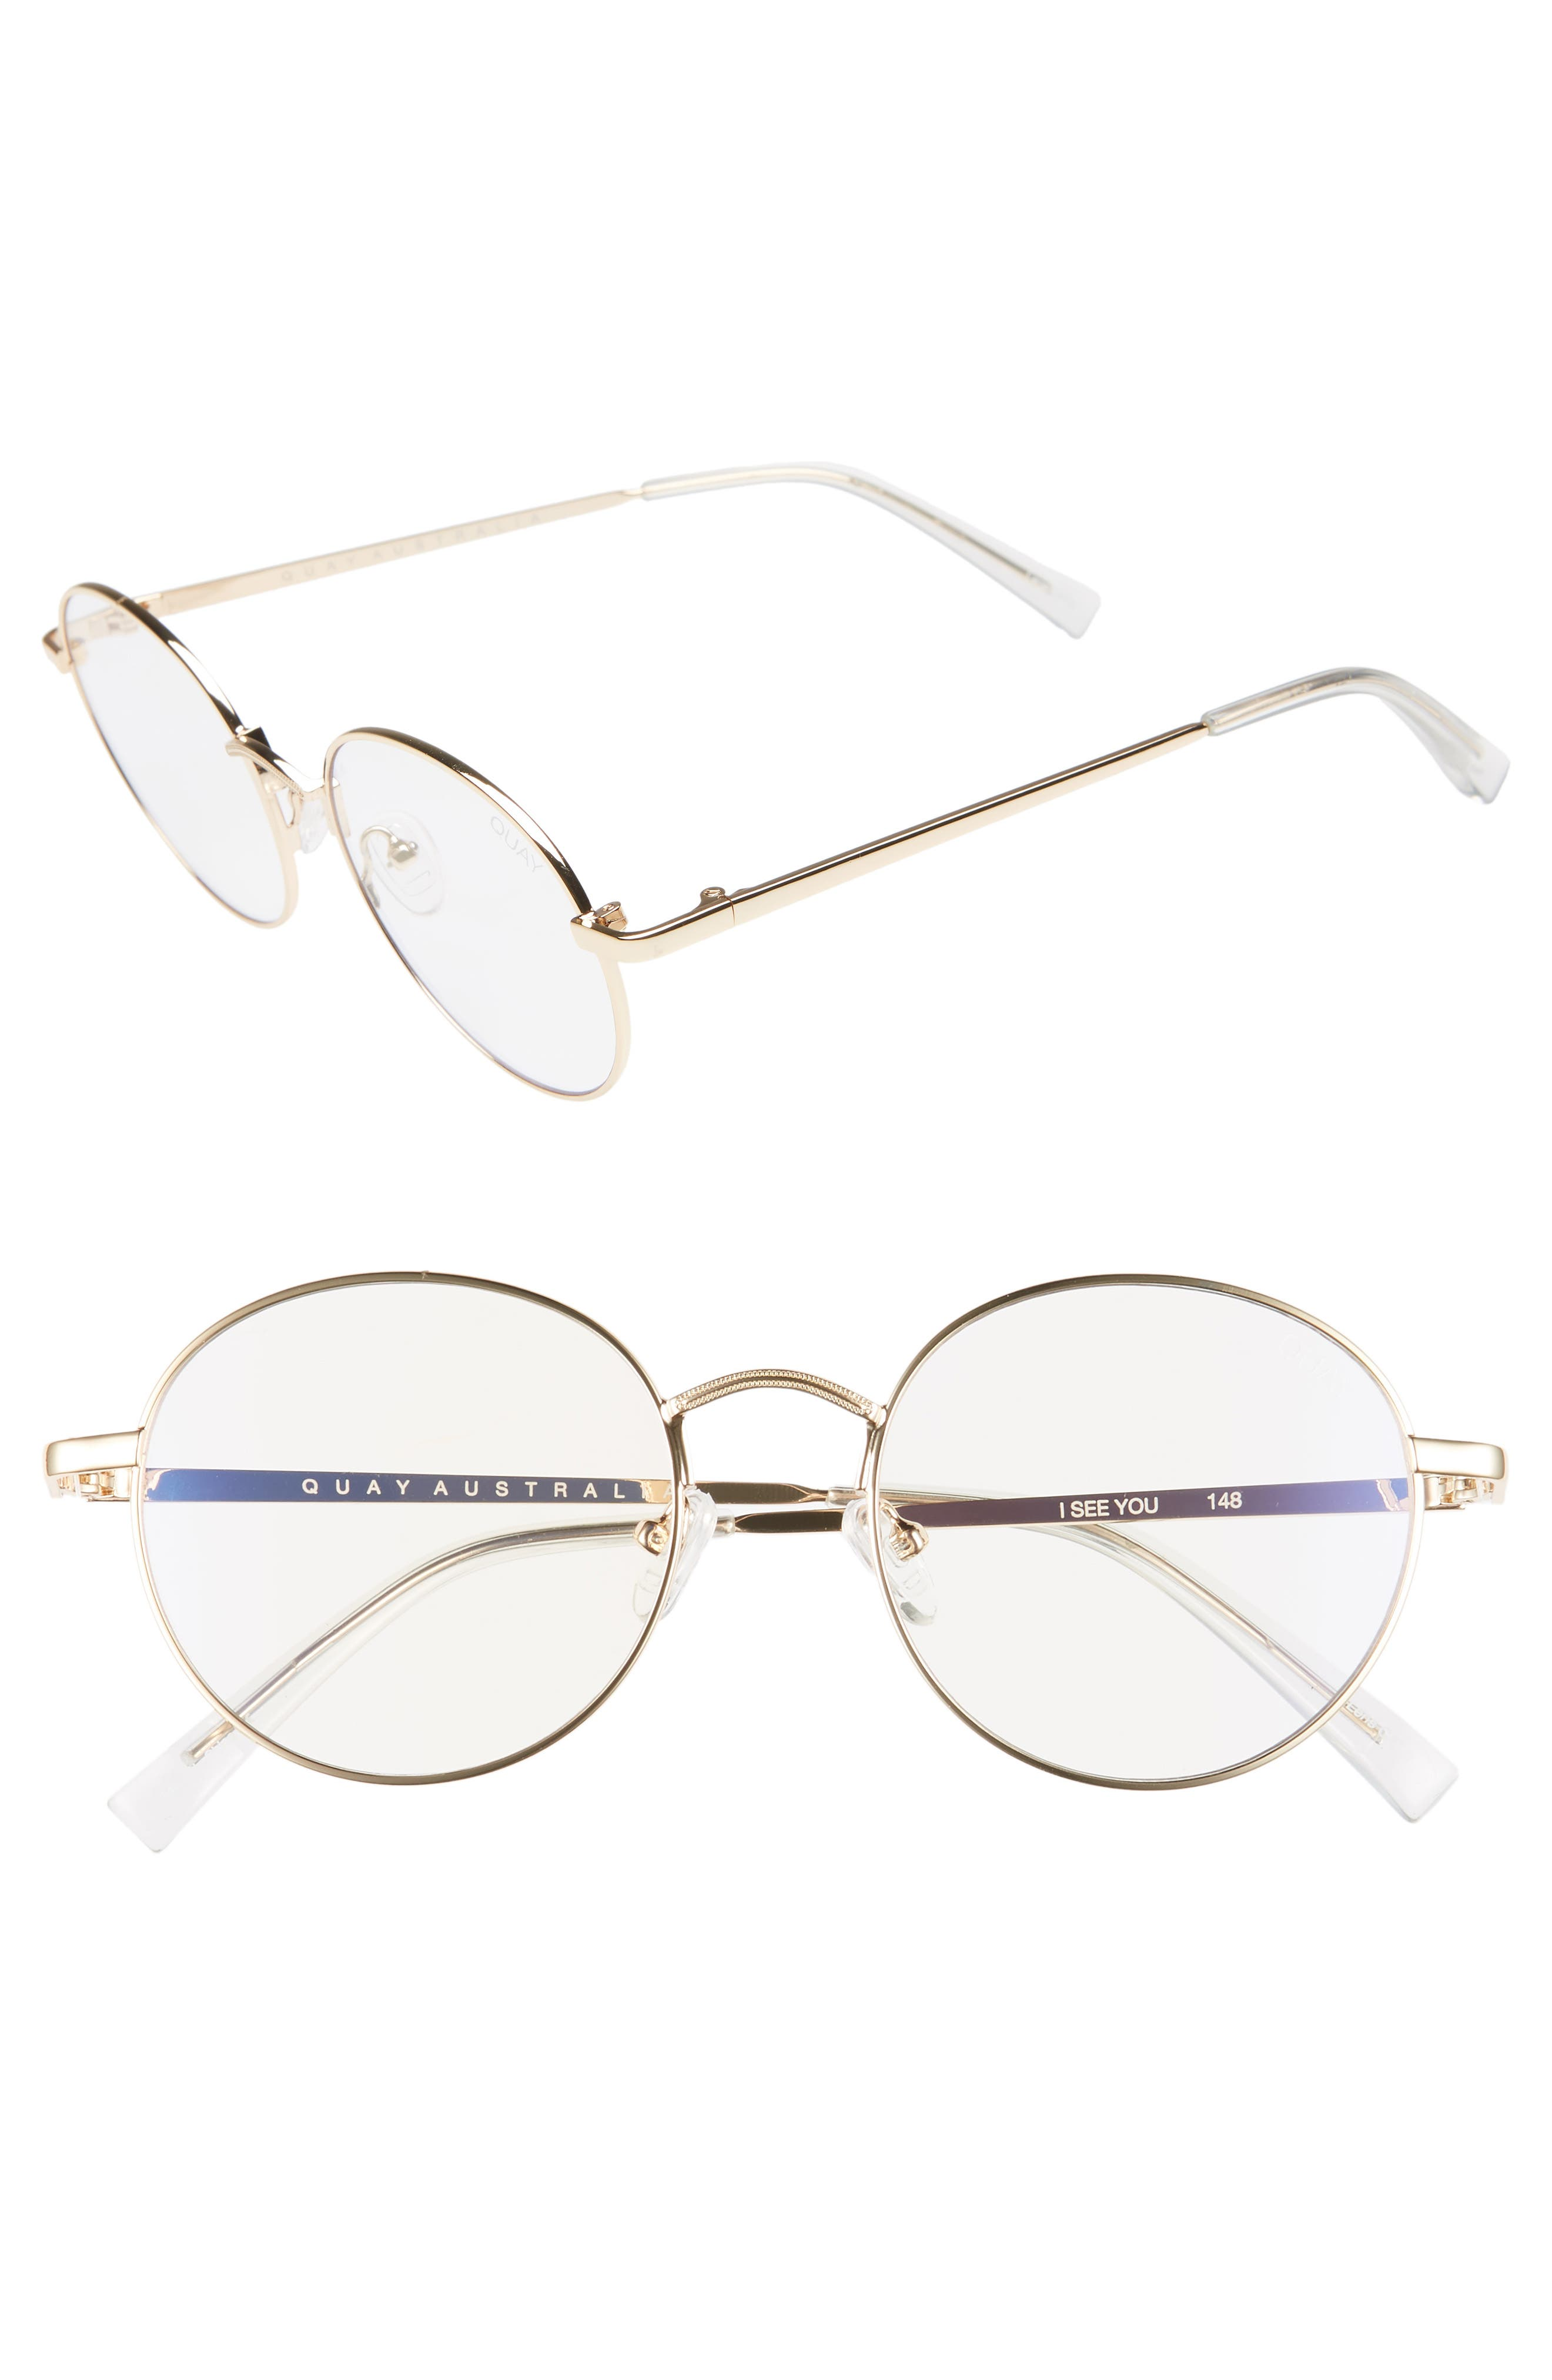 I See You 49mm Round Fashion Glasses,                             Main thumbnail 1, color,                             GOLD/ CLEAR